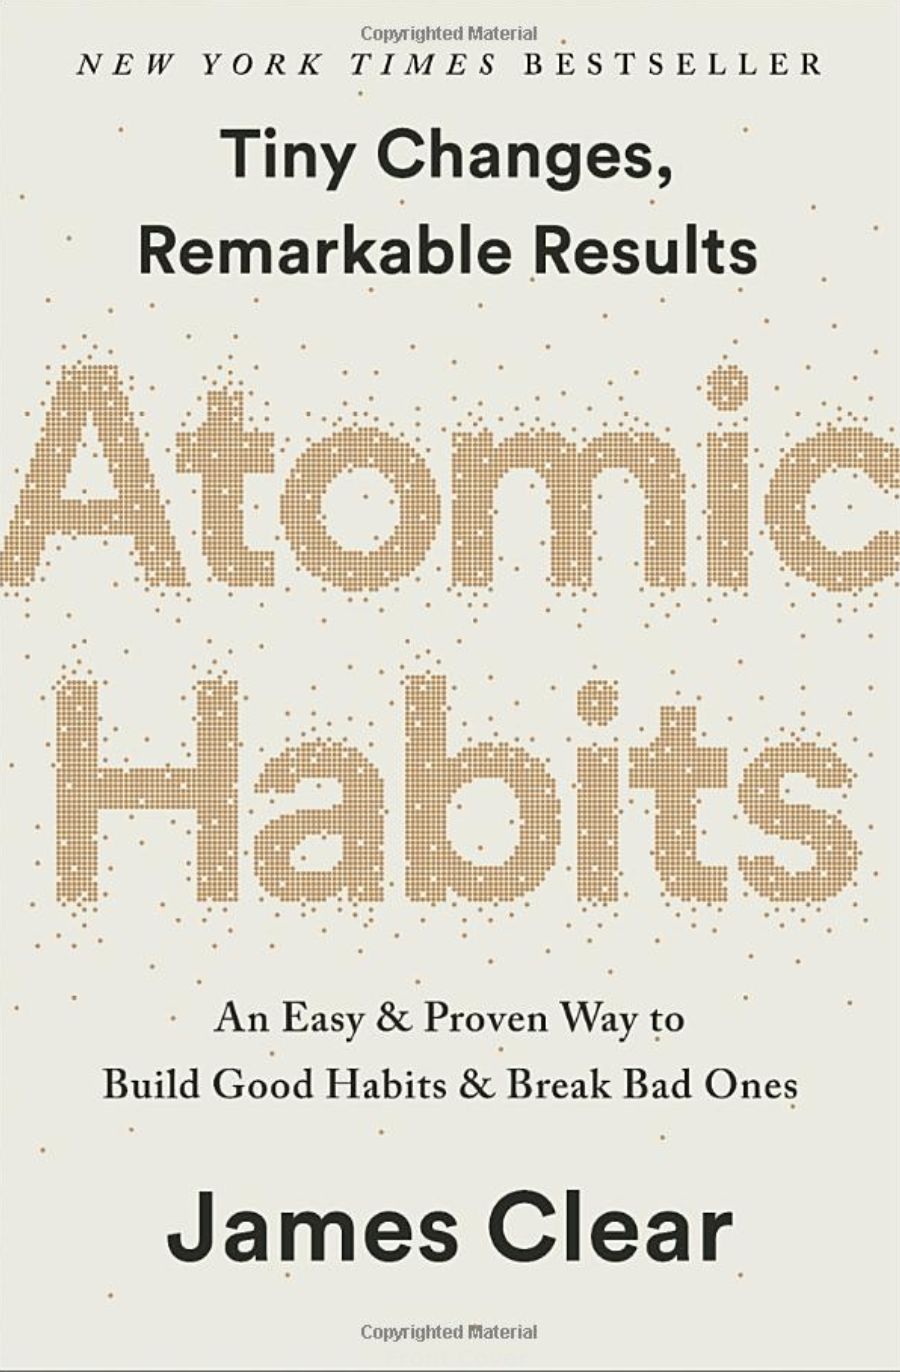 Atomic Habits of James A clear book for blogger readers